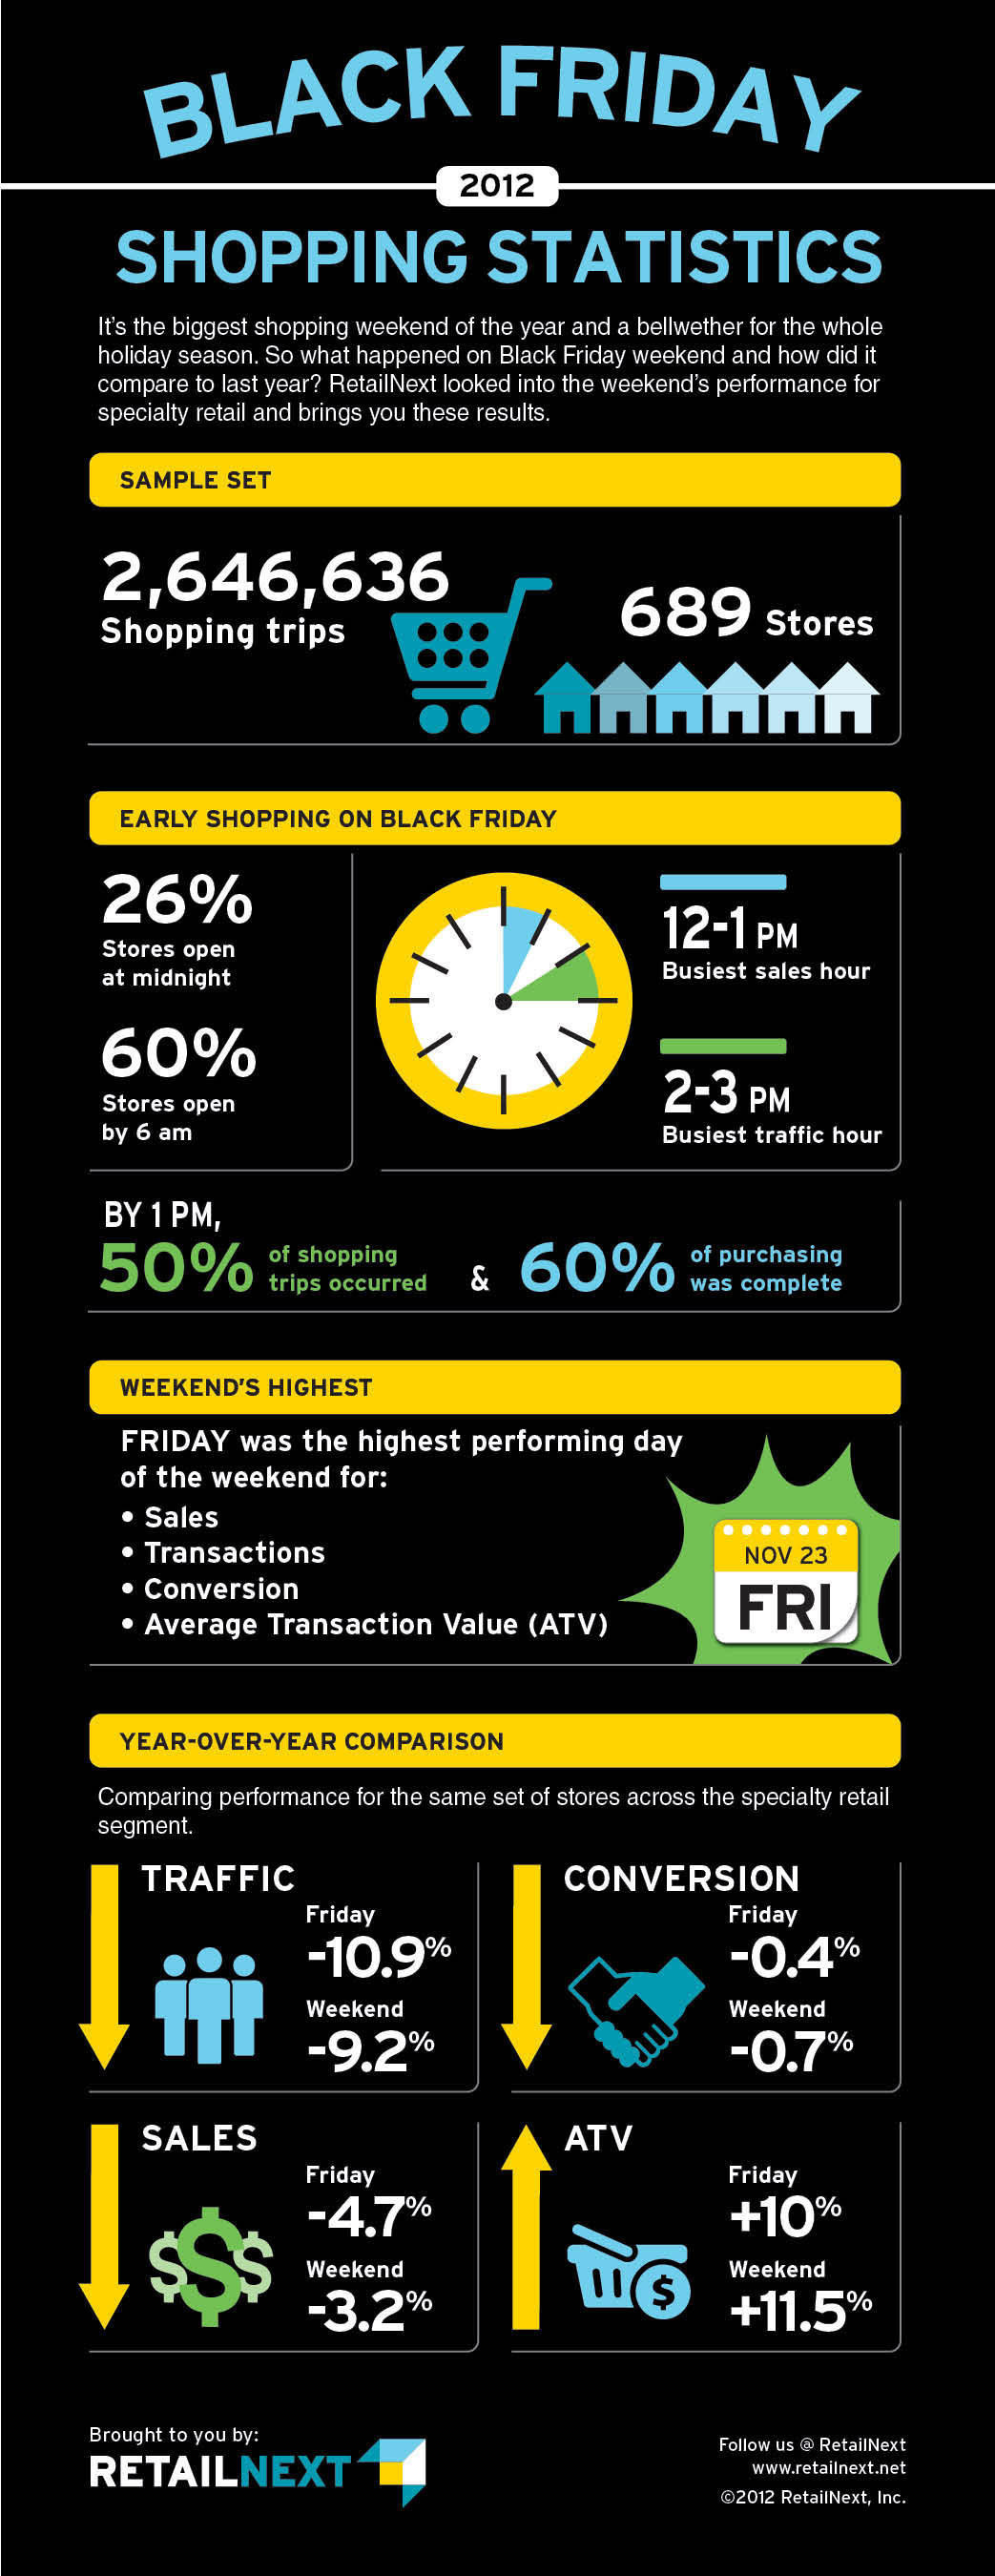 RetailNext Releases Black Friday Weekend 2012 Performance Data for Specialty Segment